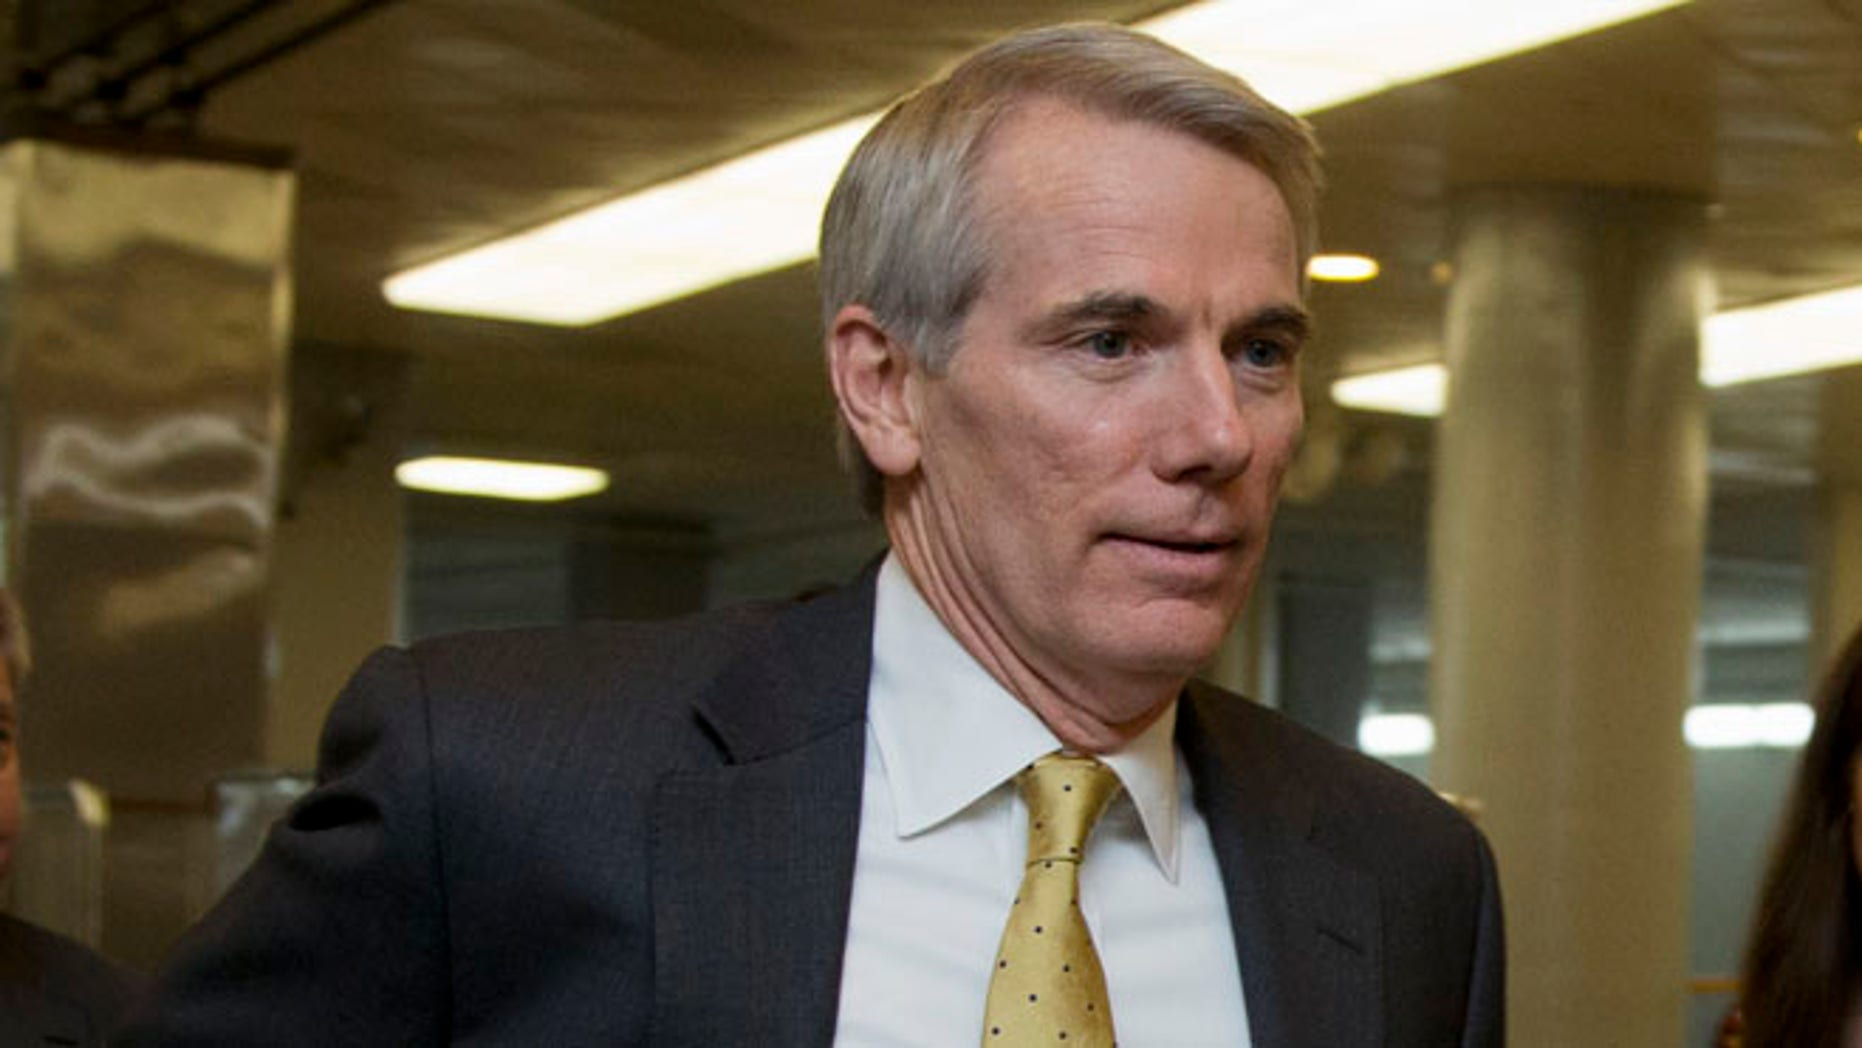 FILE: Dec. 12, 2014: Sen. Rob Portman, R-Ohio, on Capitol Hill in Washington, D.C.